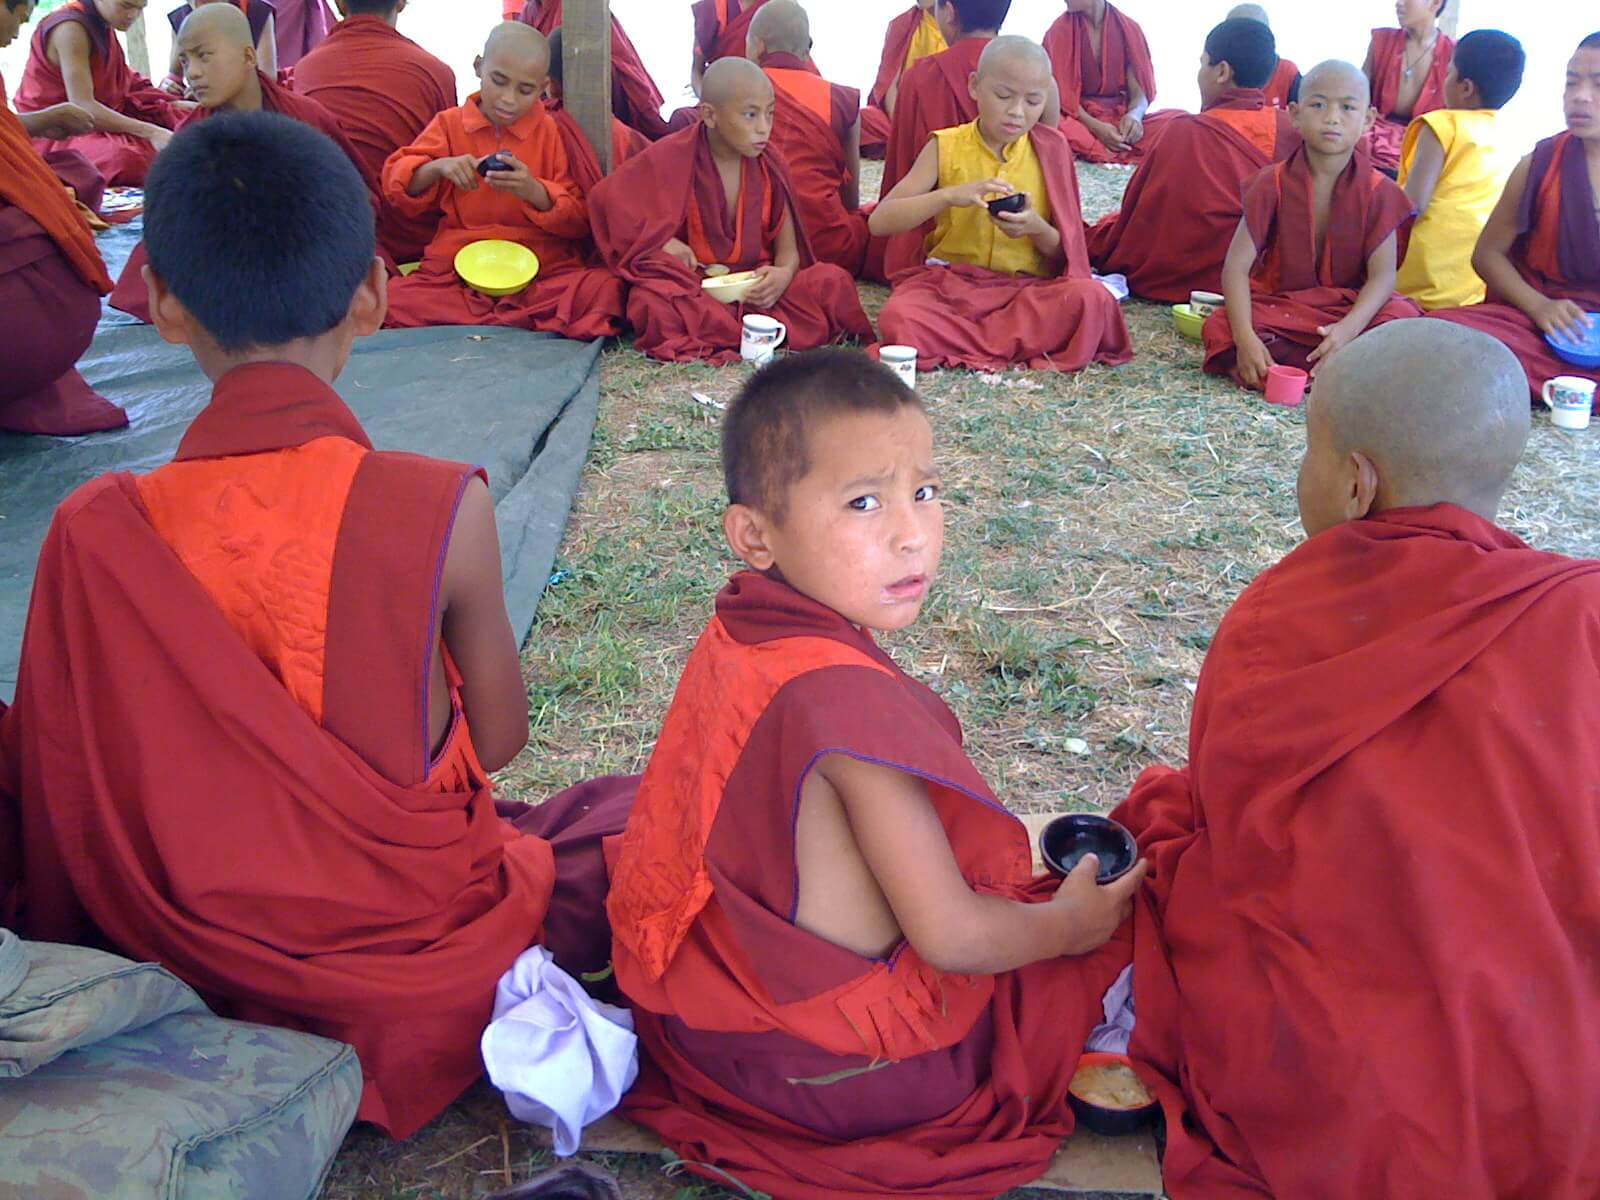 Young Buddhist monks in training in Bhutan